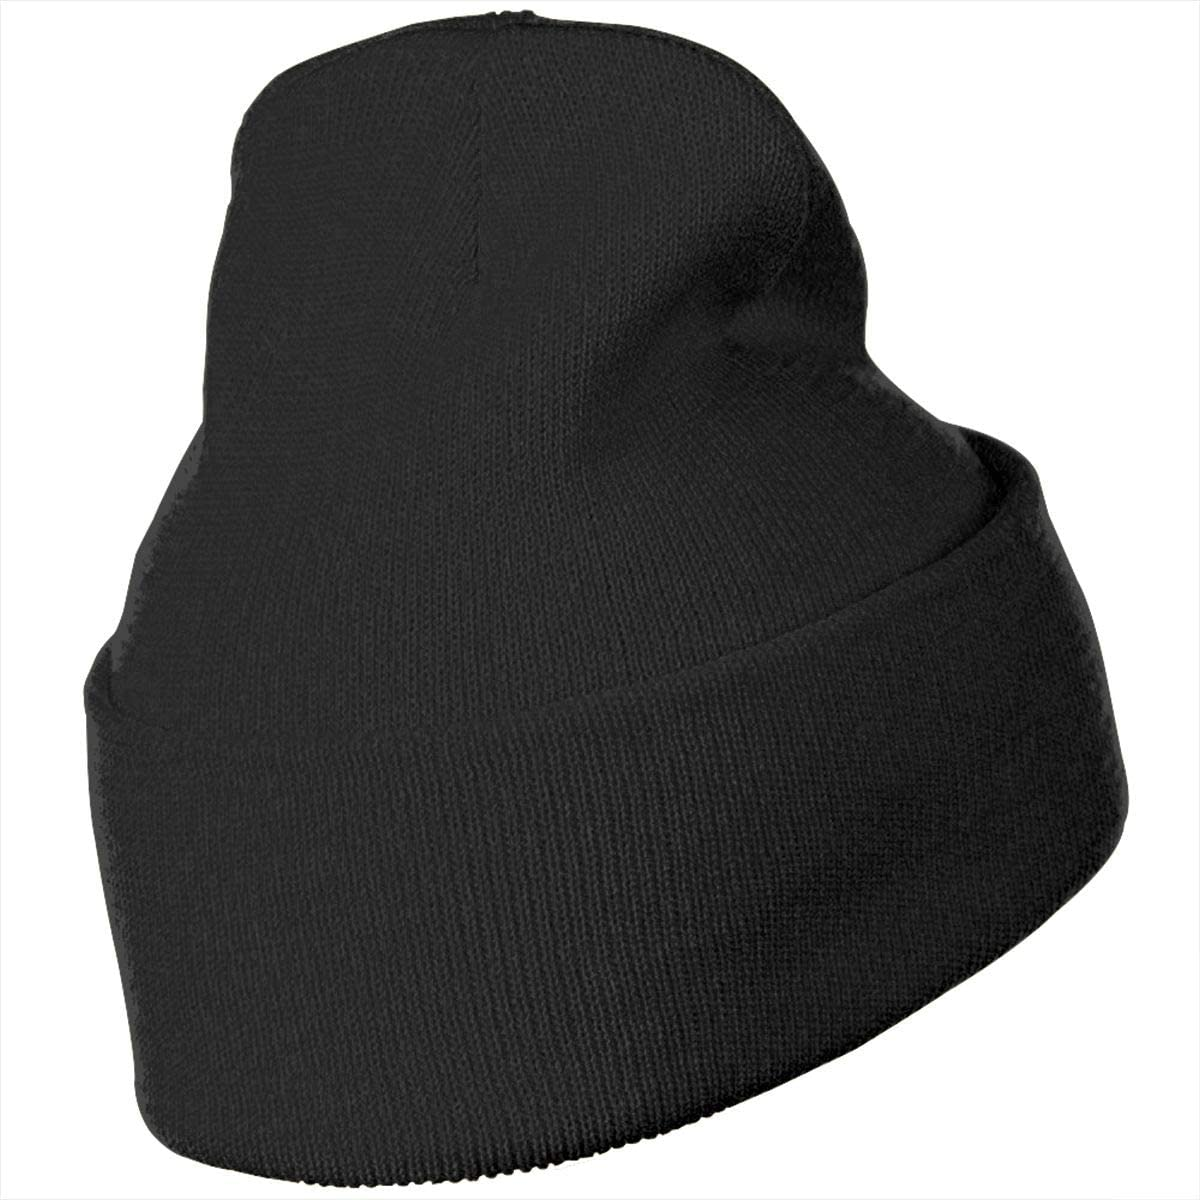 Oopp Jfhg Introverts Unite Individually 5 Wool Cap Ski Caps Unisex Winter Black